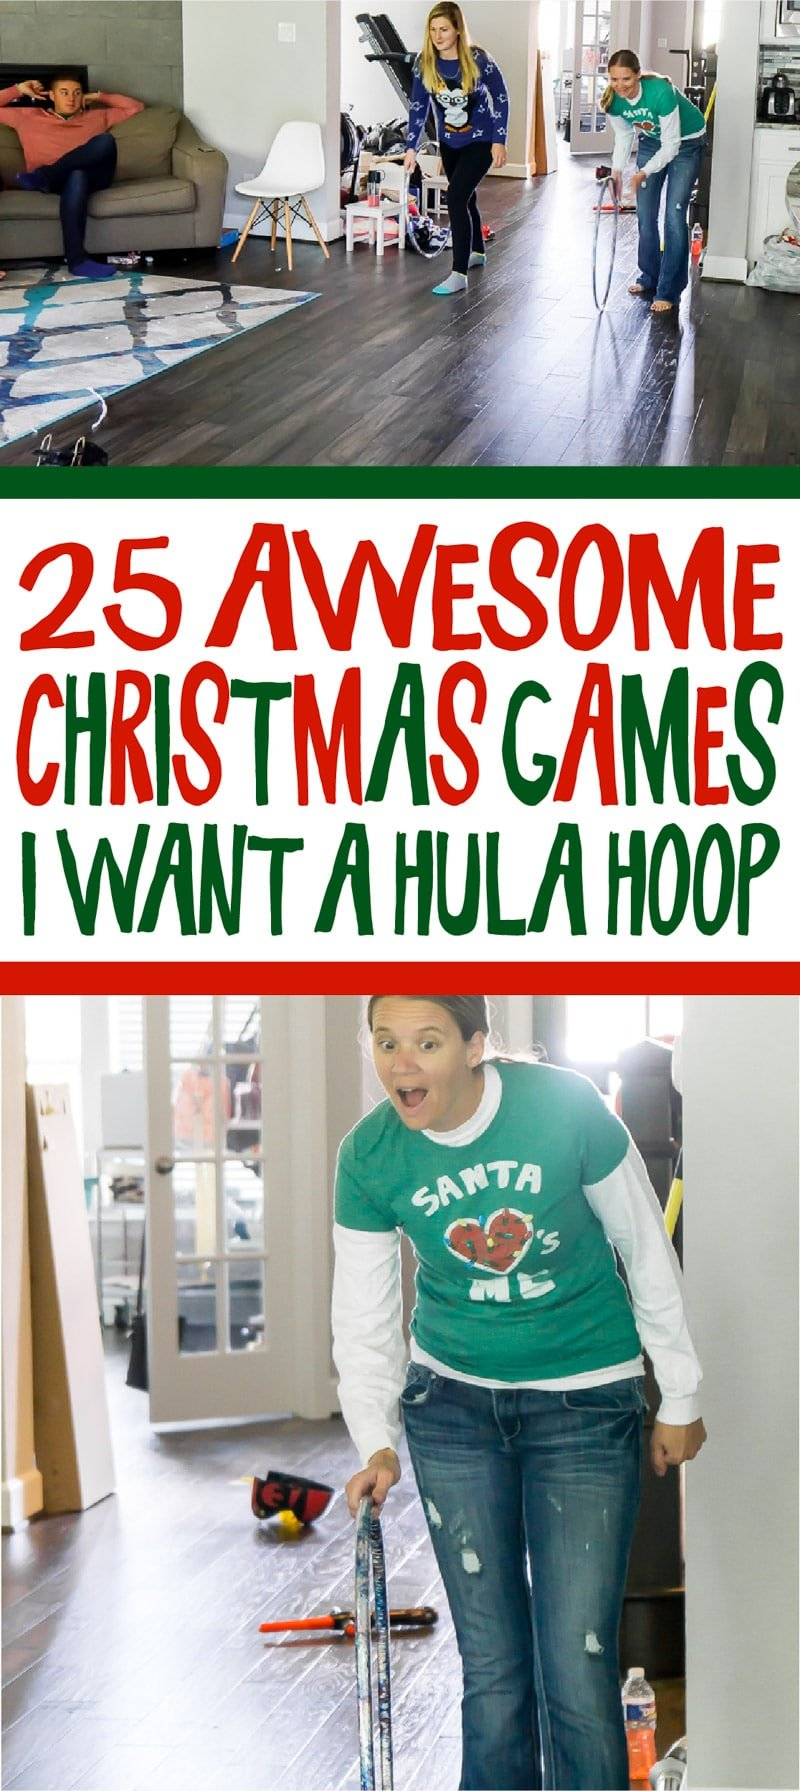 Christmas games inspired by popular songs like I want a hula hoop